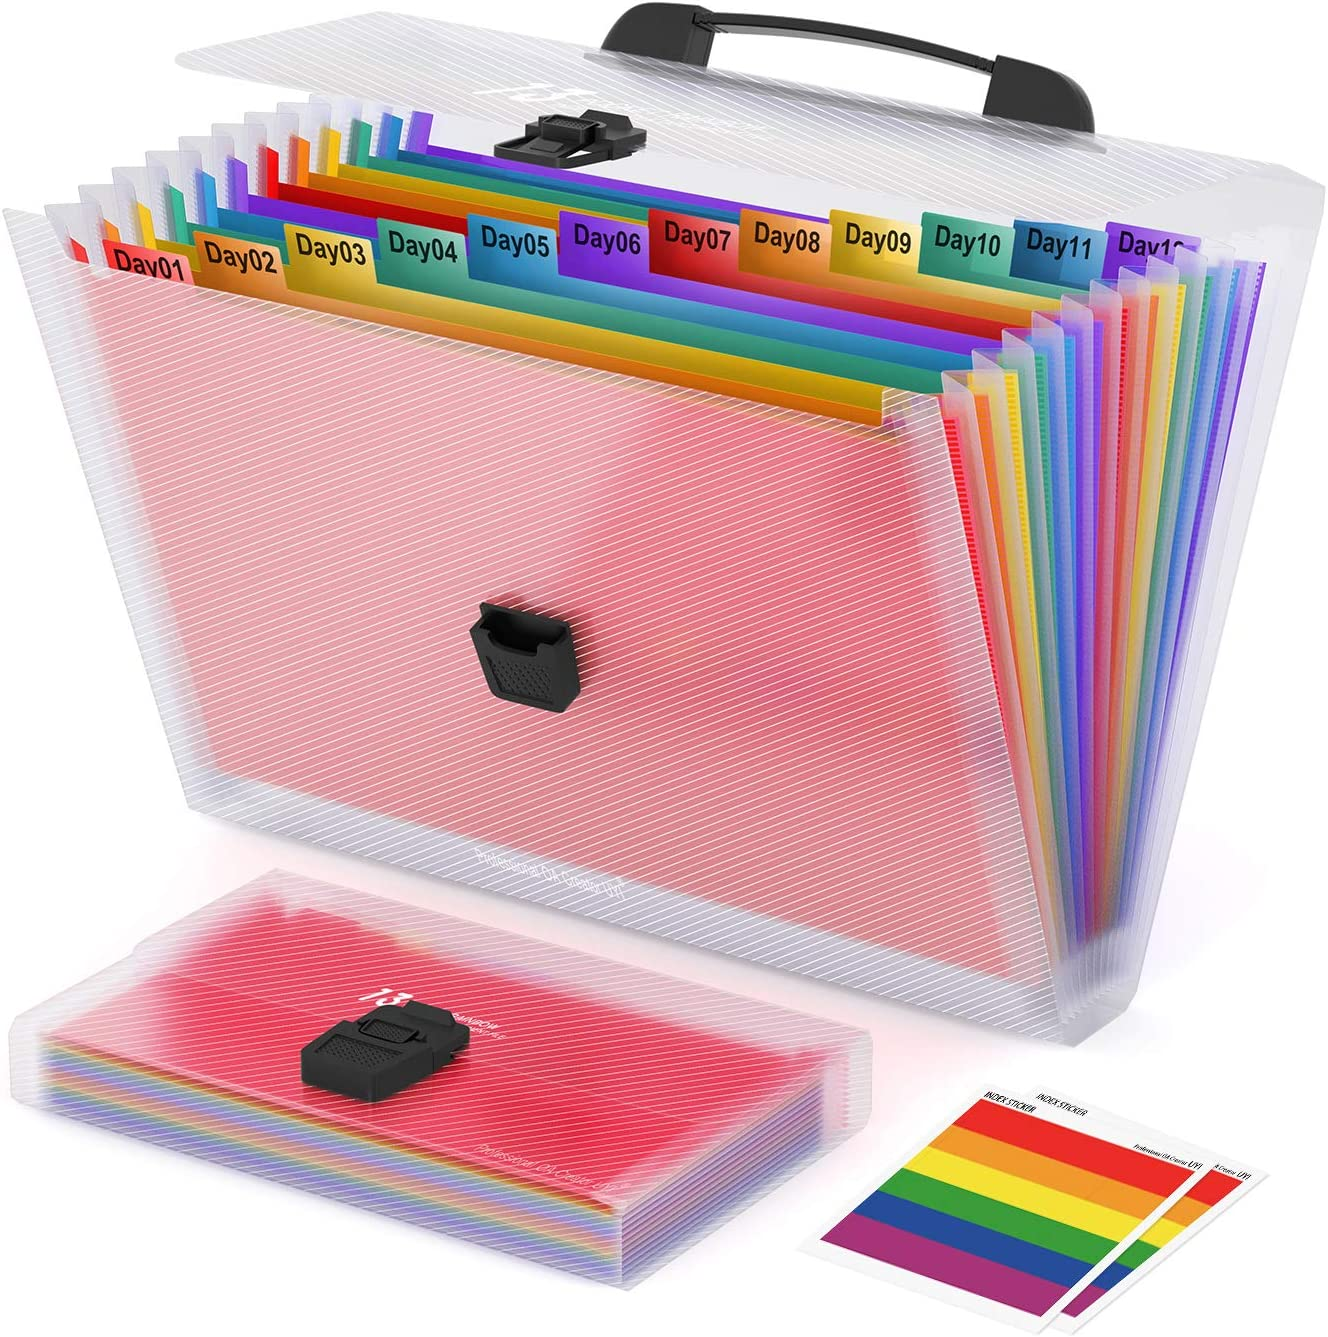 Expanding File Folder ActFaith 13 Pockets Multi-Colour Plastic Accordion Wallet Folders A4/A6 Size Handle Portable Document Letter Size Holder File Organizer for Office/School/Family-2 Pieces